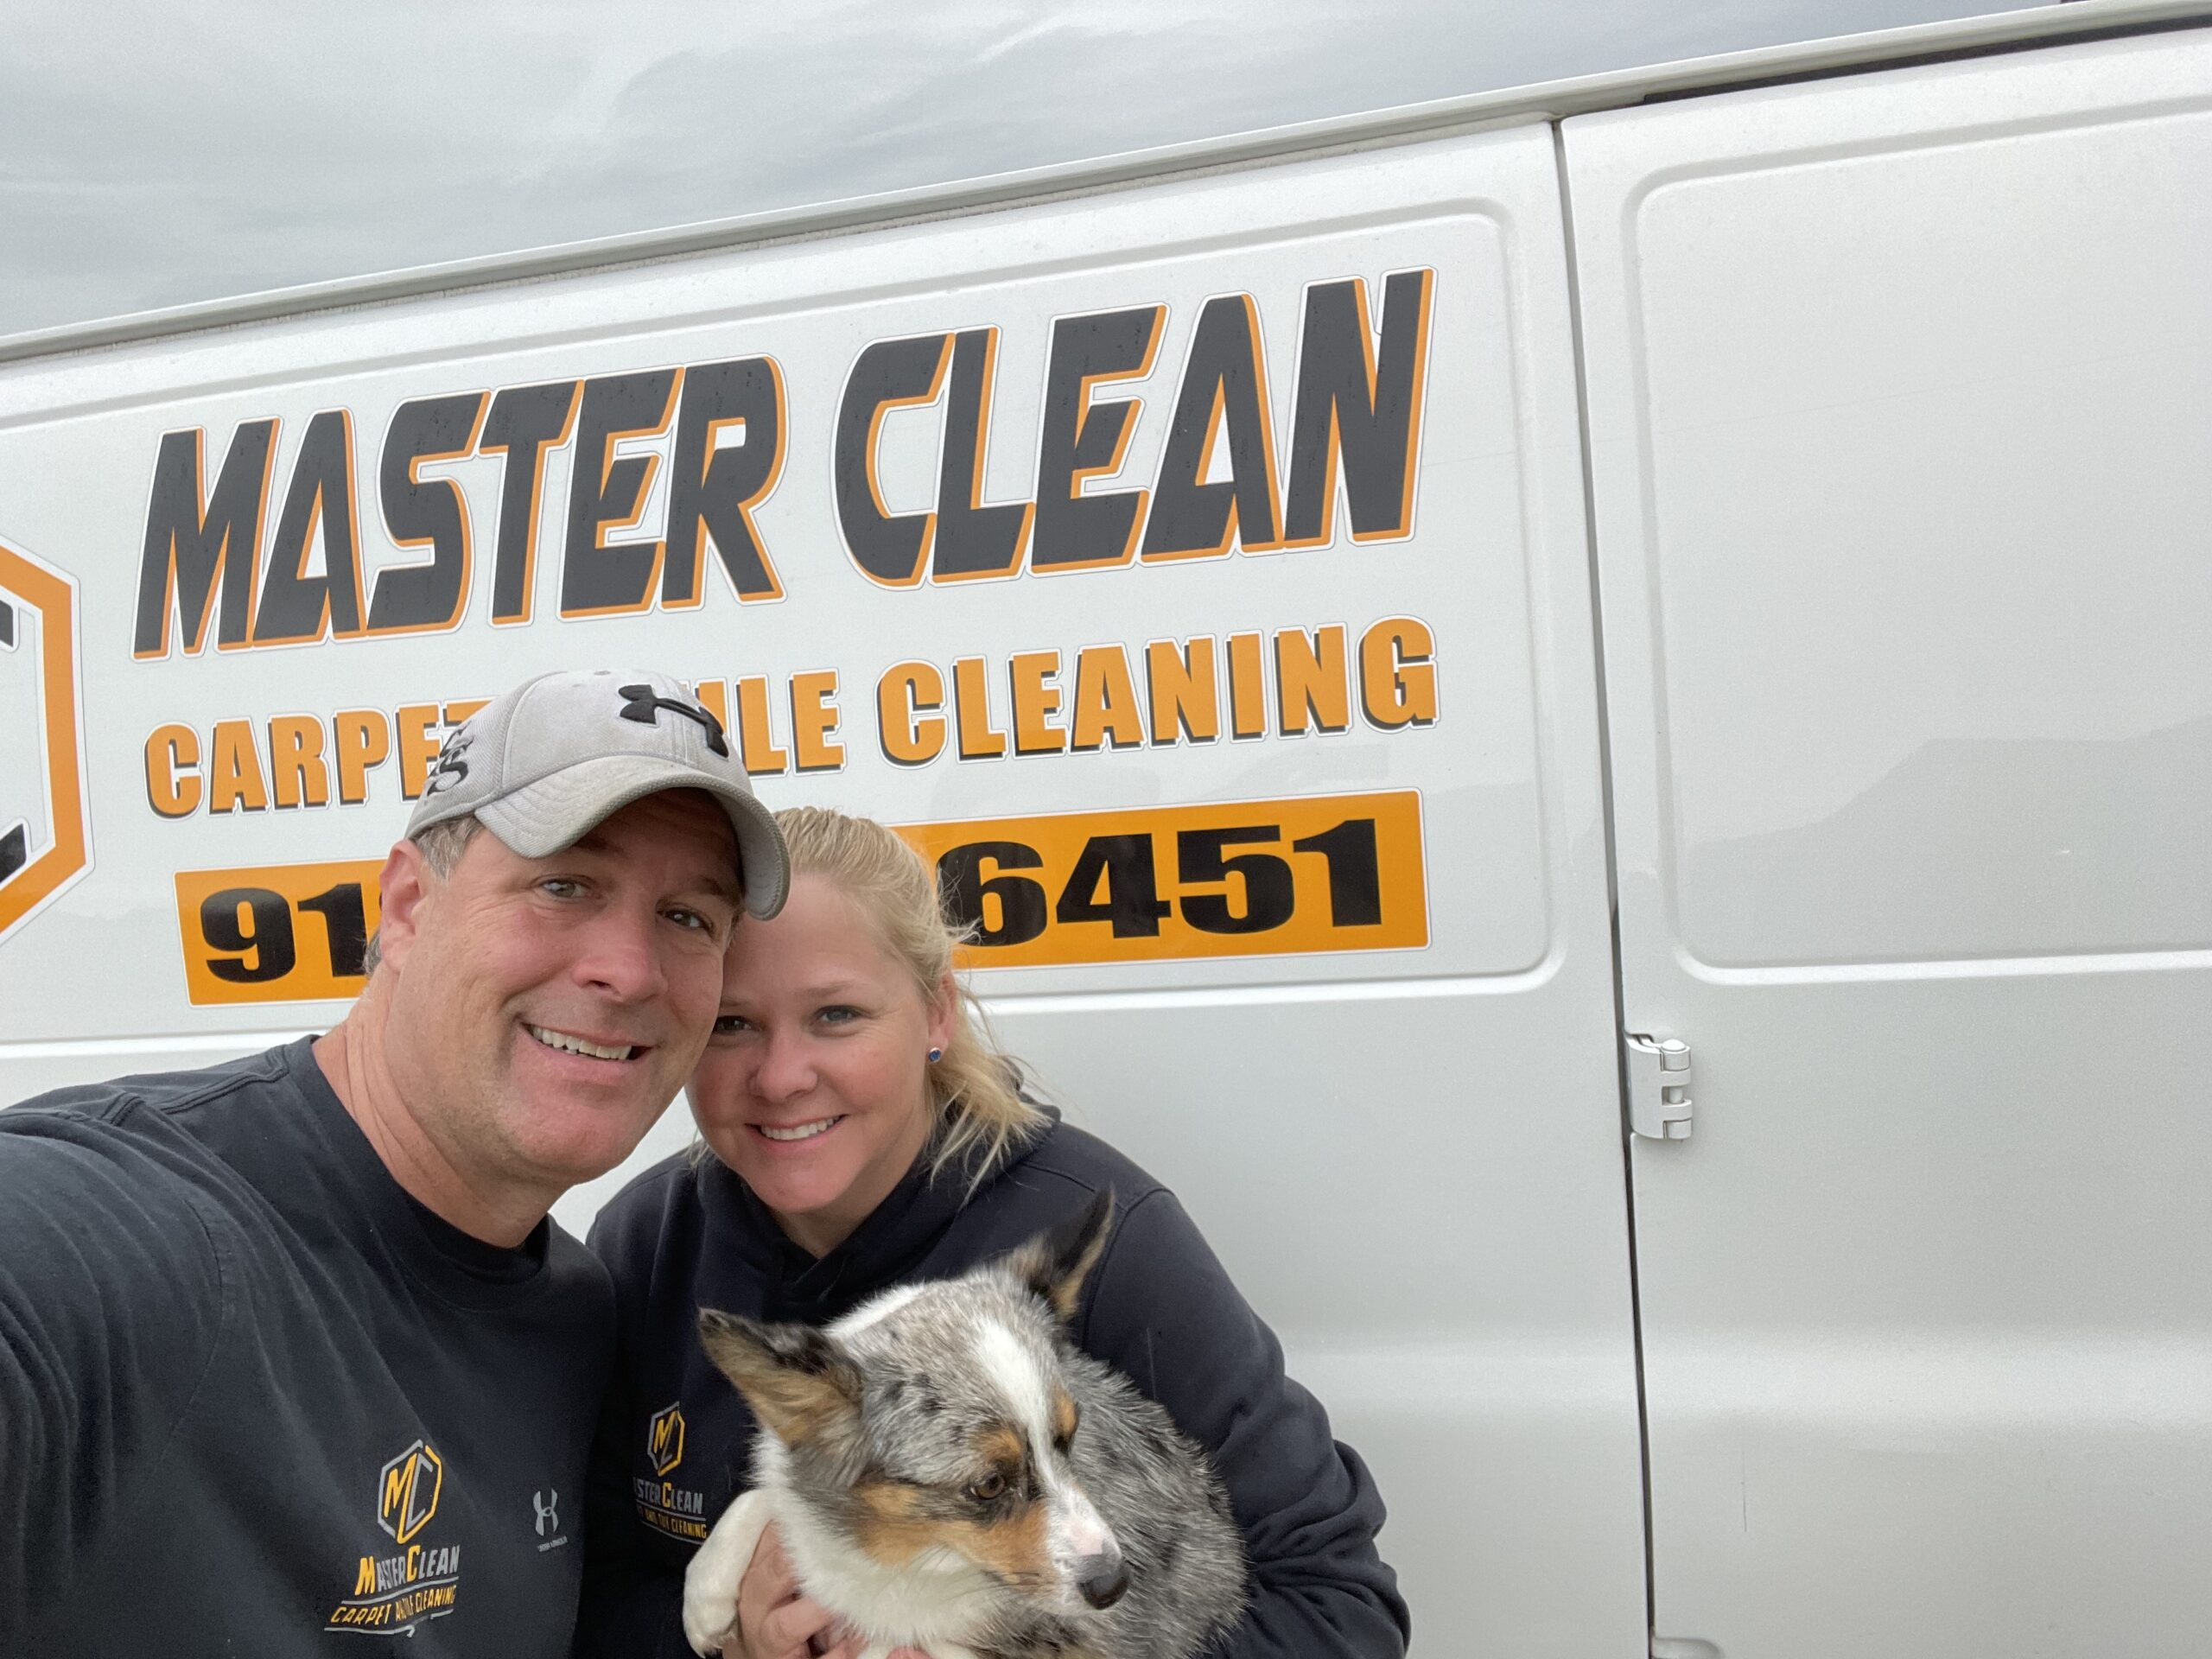 A picture of the Master Clean owners with a dog.